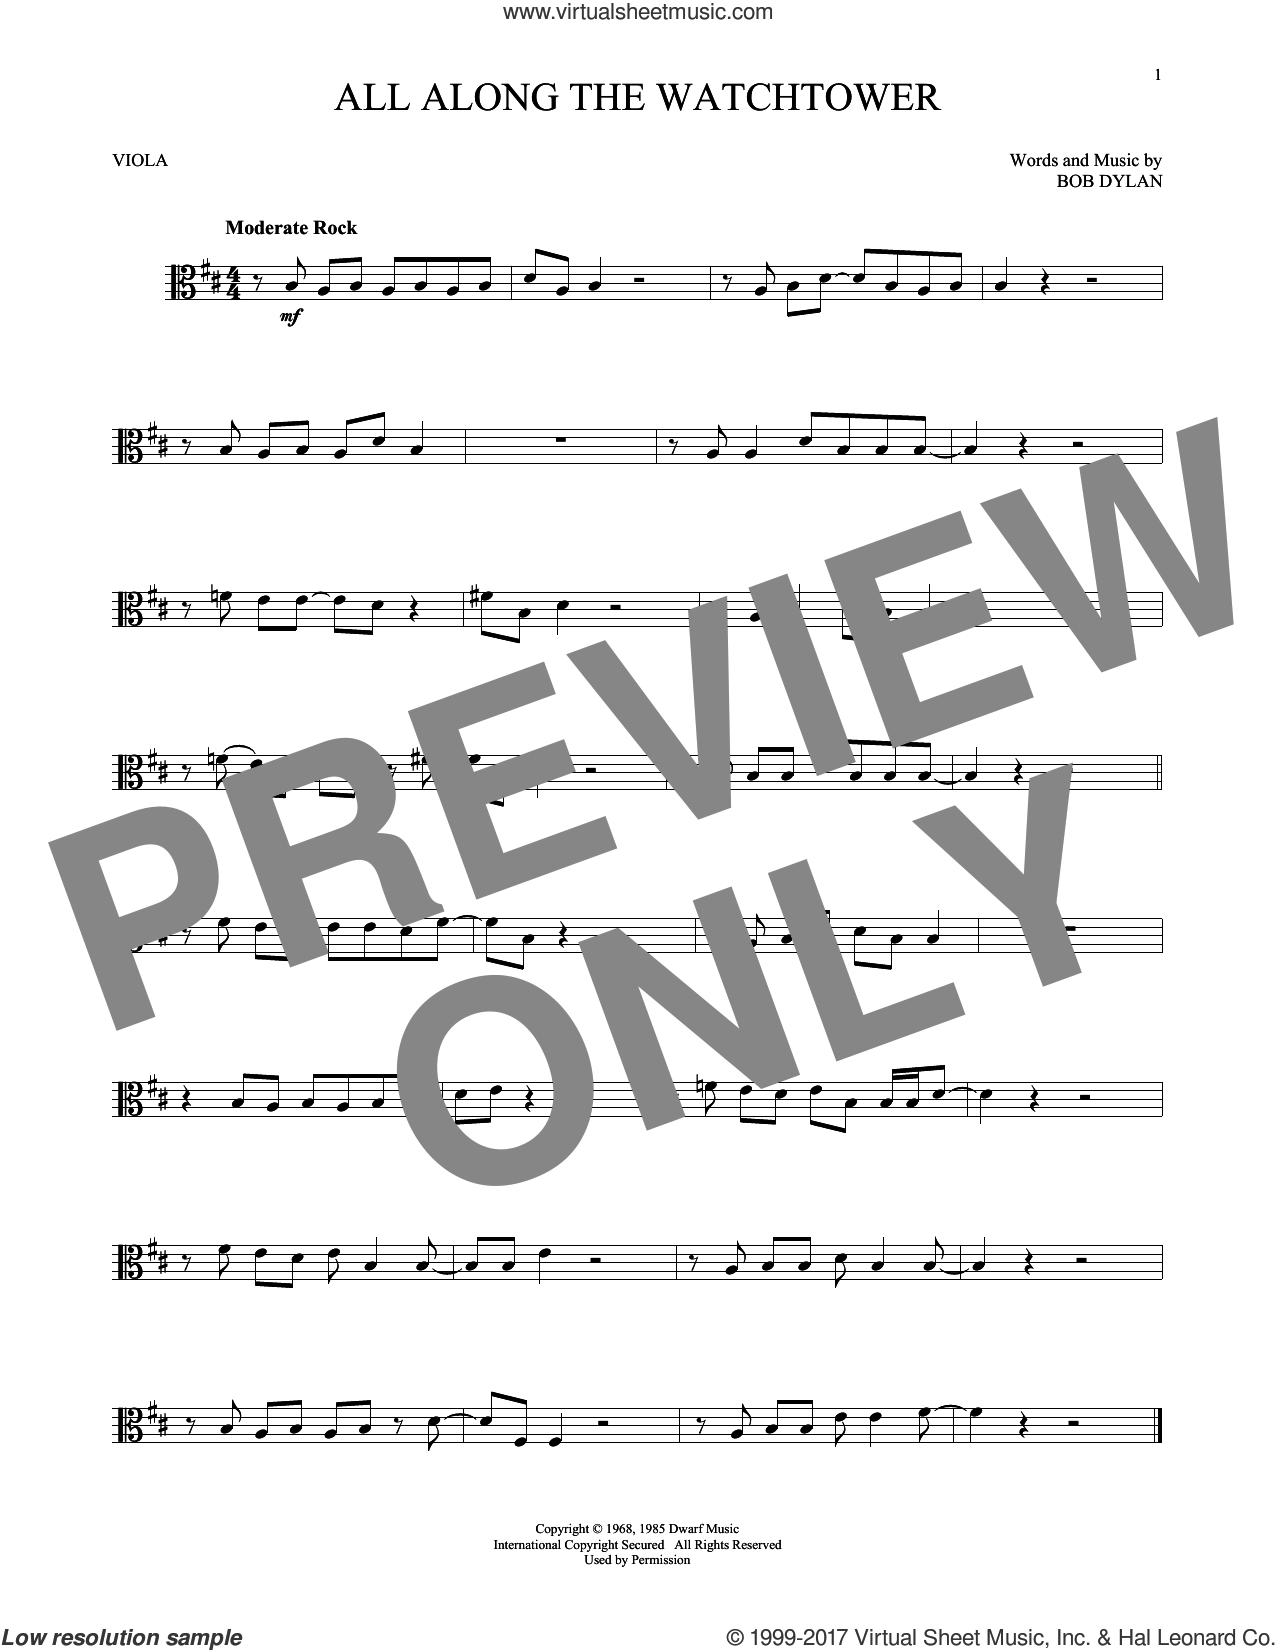 All Along The Watchtower sheet music for viola solo by Bob Dylan, intermediate